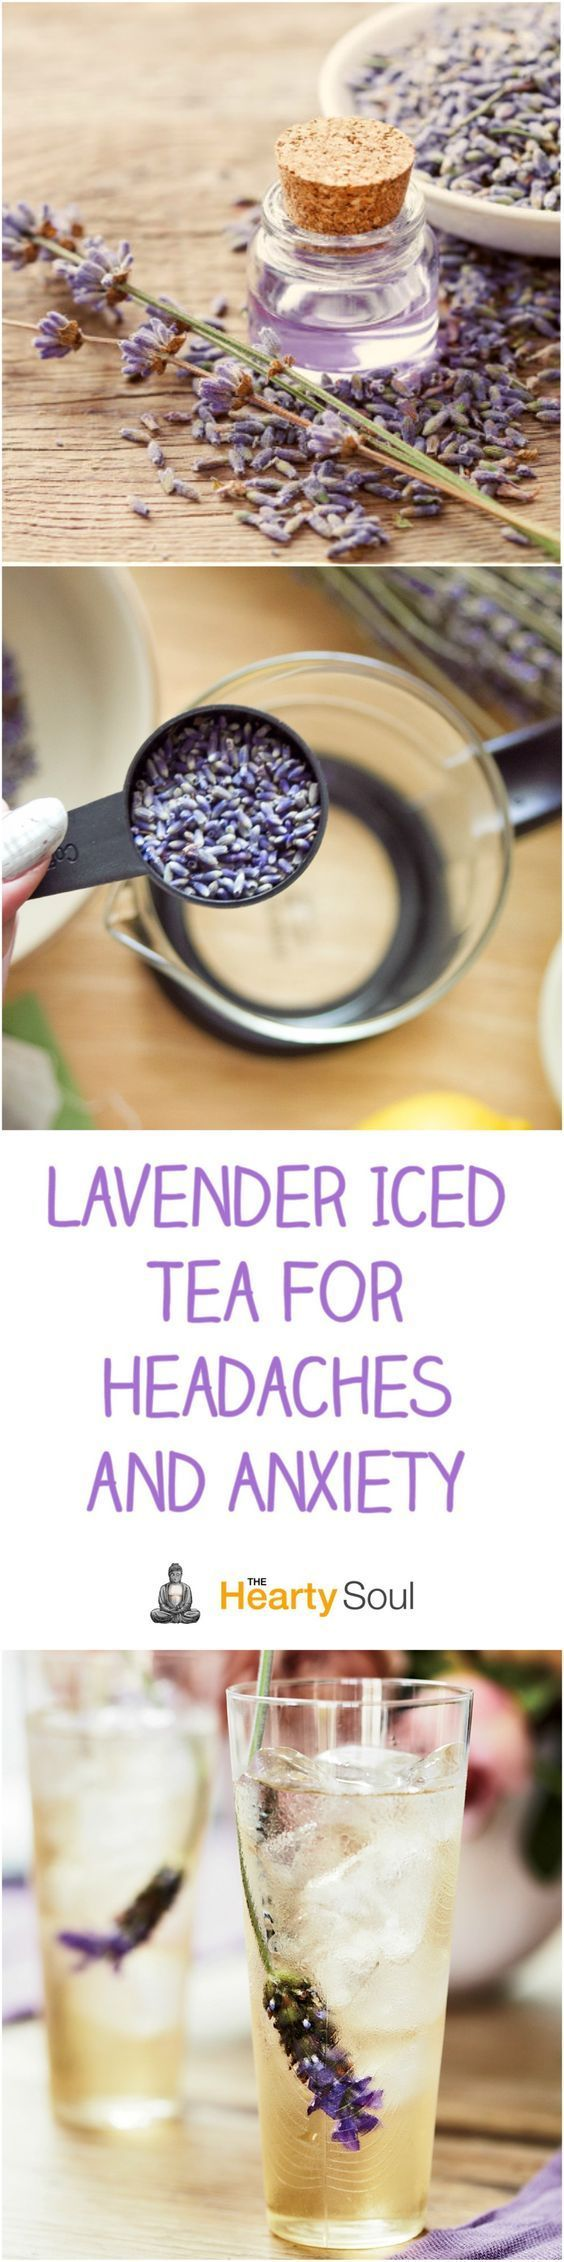 How to Make Lavender Iced Tea to Get Rid of Headaches and Anxiety